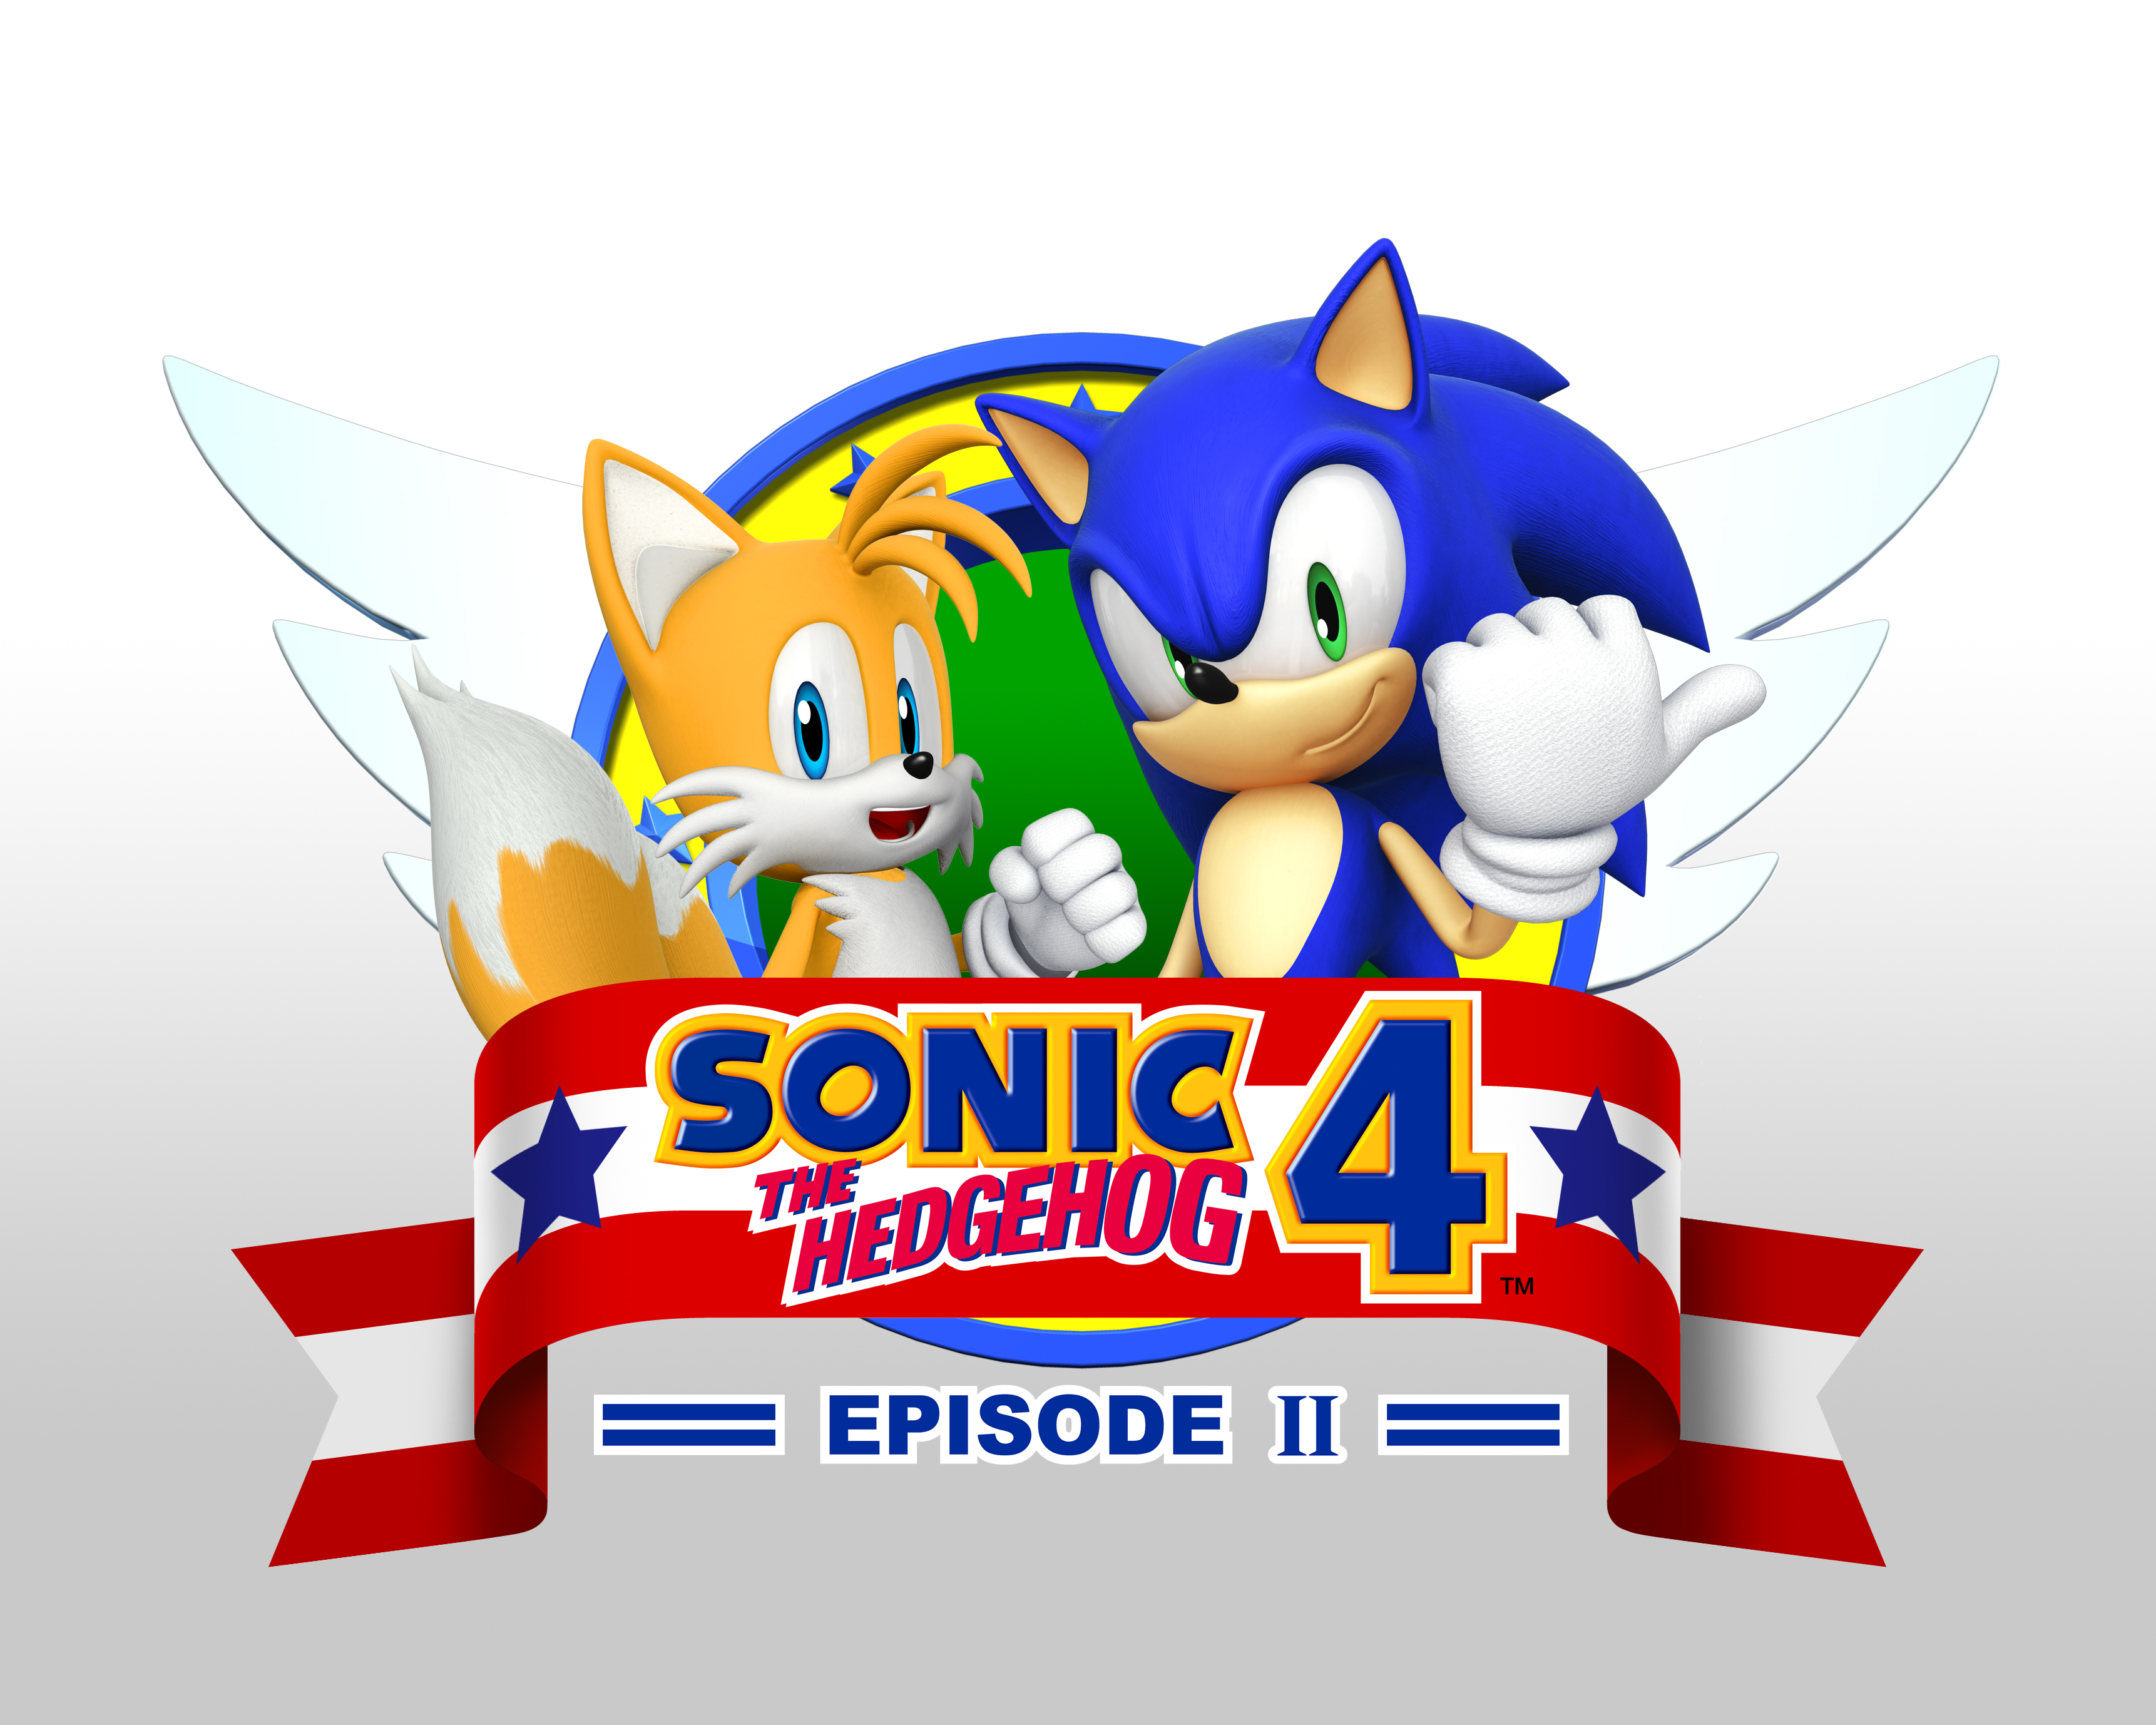 Sonic the Hedgehog 4 Episode 2 logo